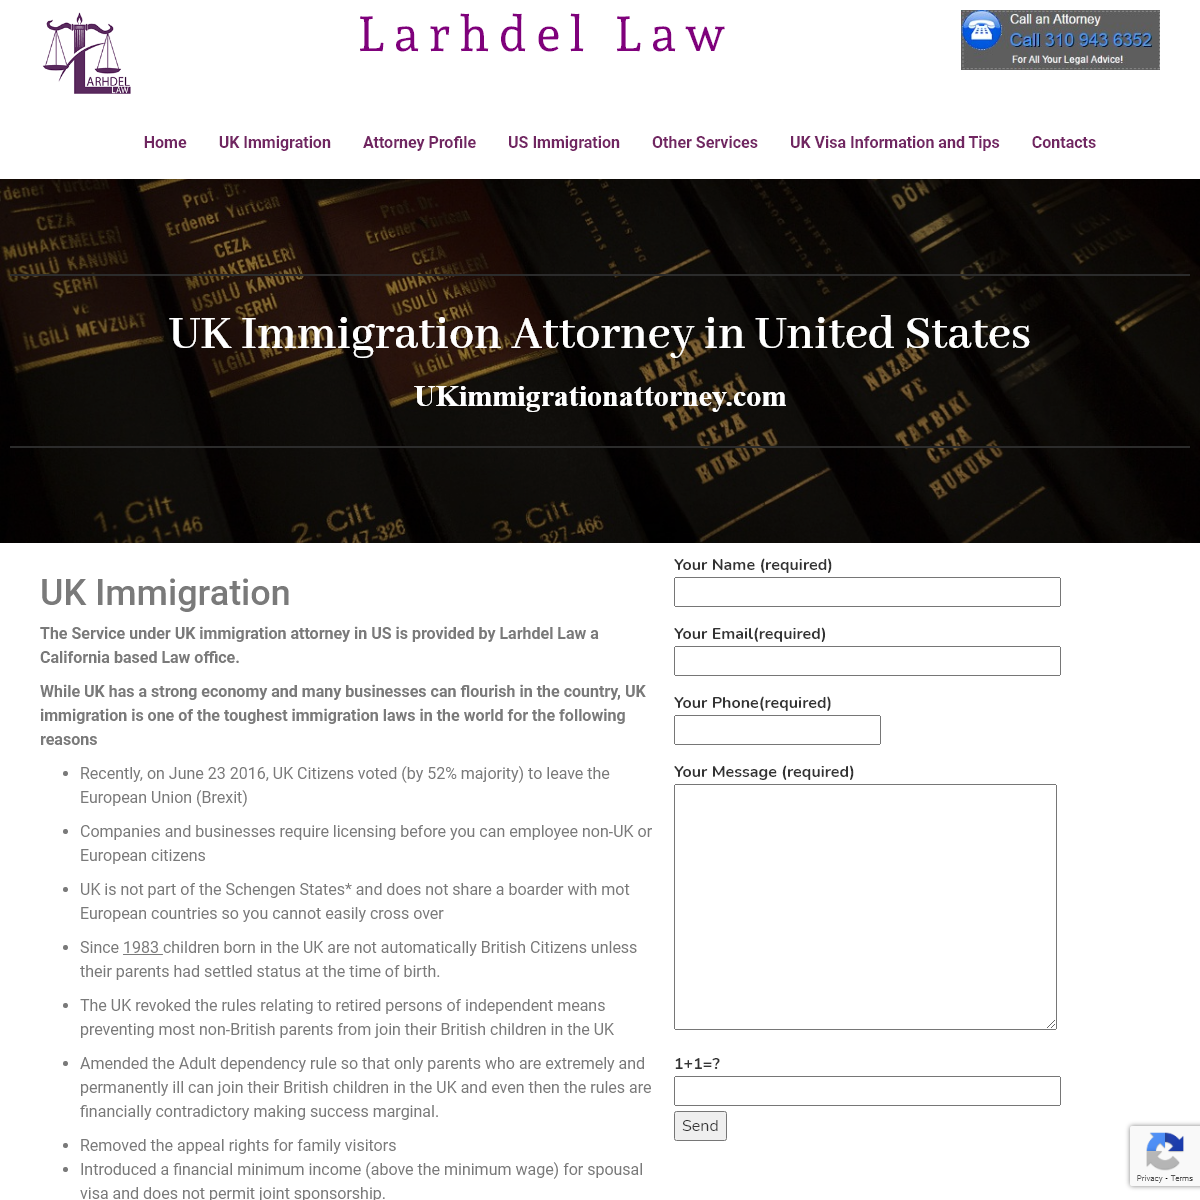 UK Immigration Attorney - call us on 310 943 6352